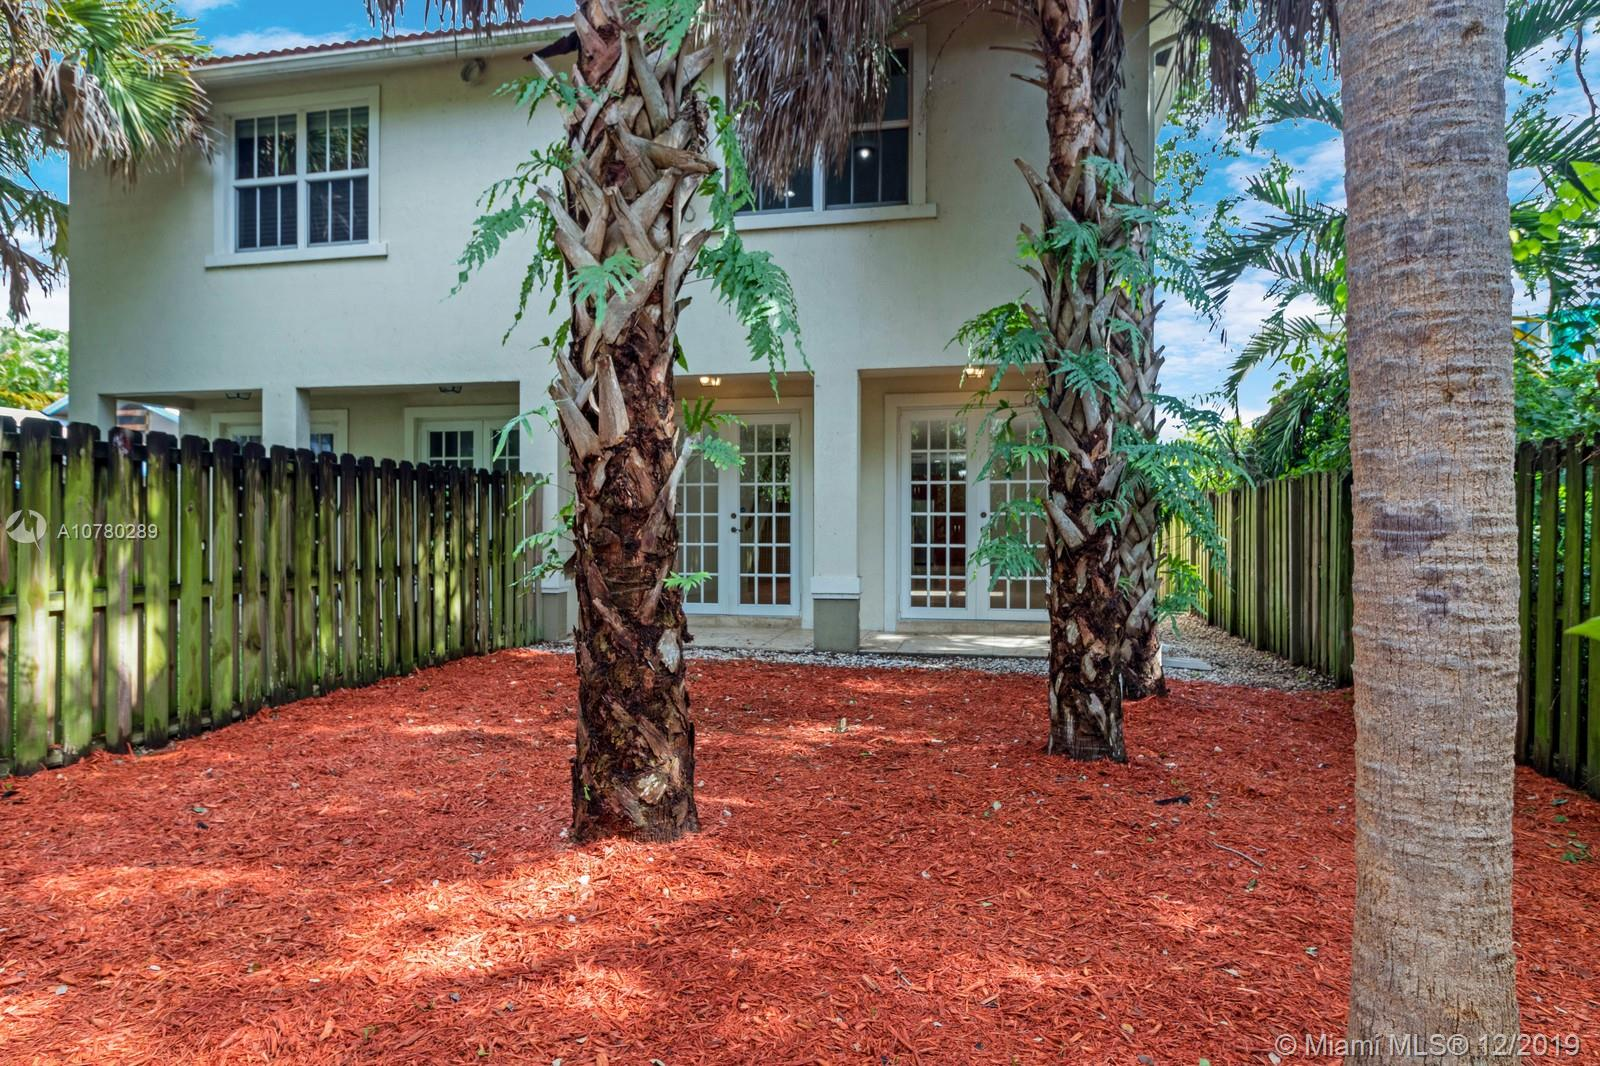 Best value in Tarpon River, impecable floor plan with 2,500 SF under air plus a lush, generous backyard. Travertine marble floors downstairs, bamboo stairs and hallway lead you to bedrooms upstairs. Master suite oversized with 3  closets. Two car garage plus 4 car driveway.